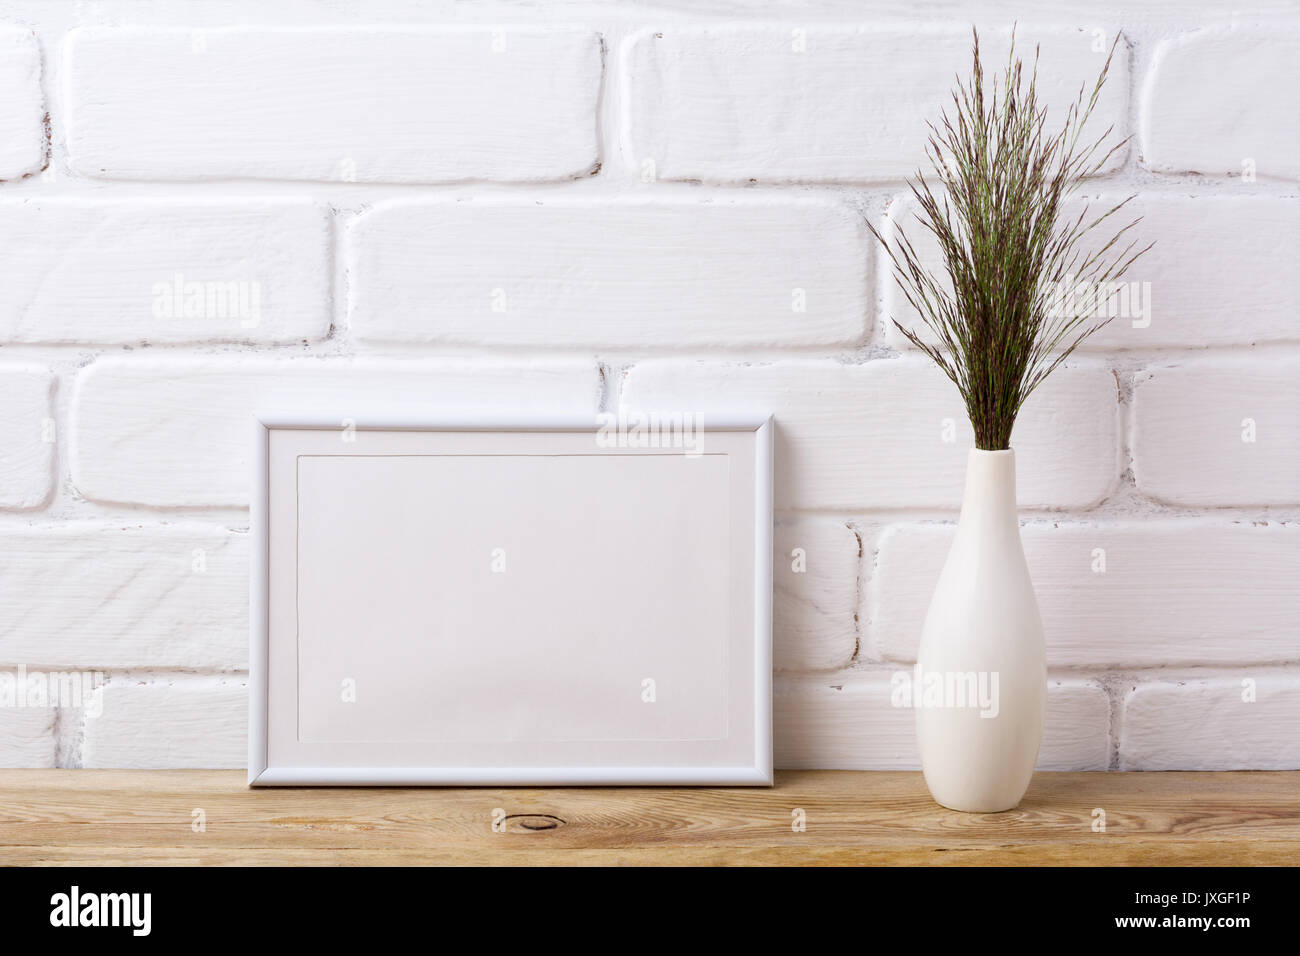 White Landscape Frame Mockup With Dark Meadow Grass In Elegant Vase Stock Photo Alamy